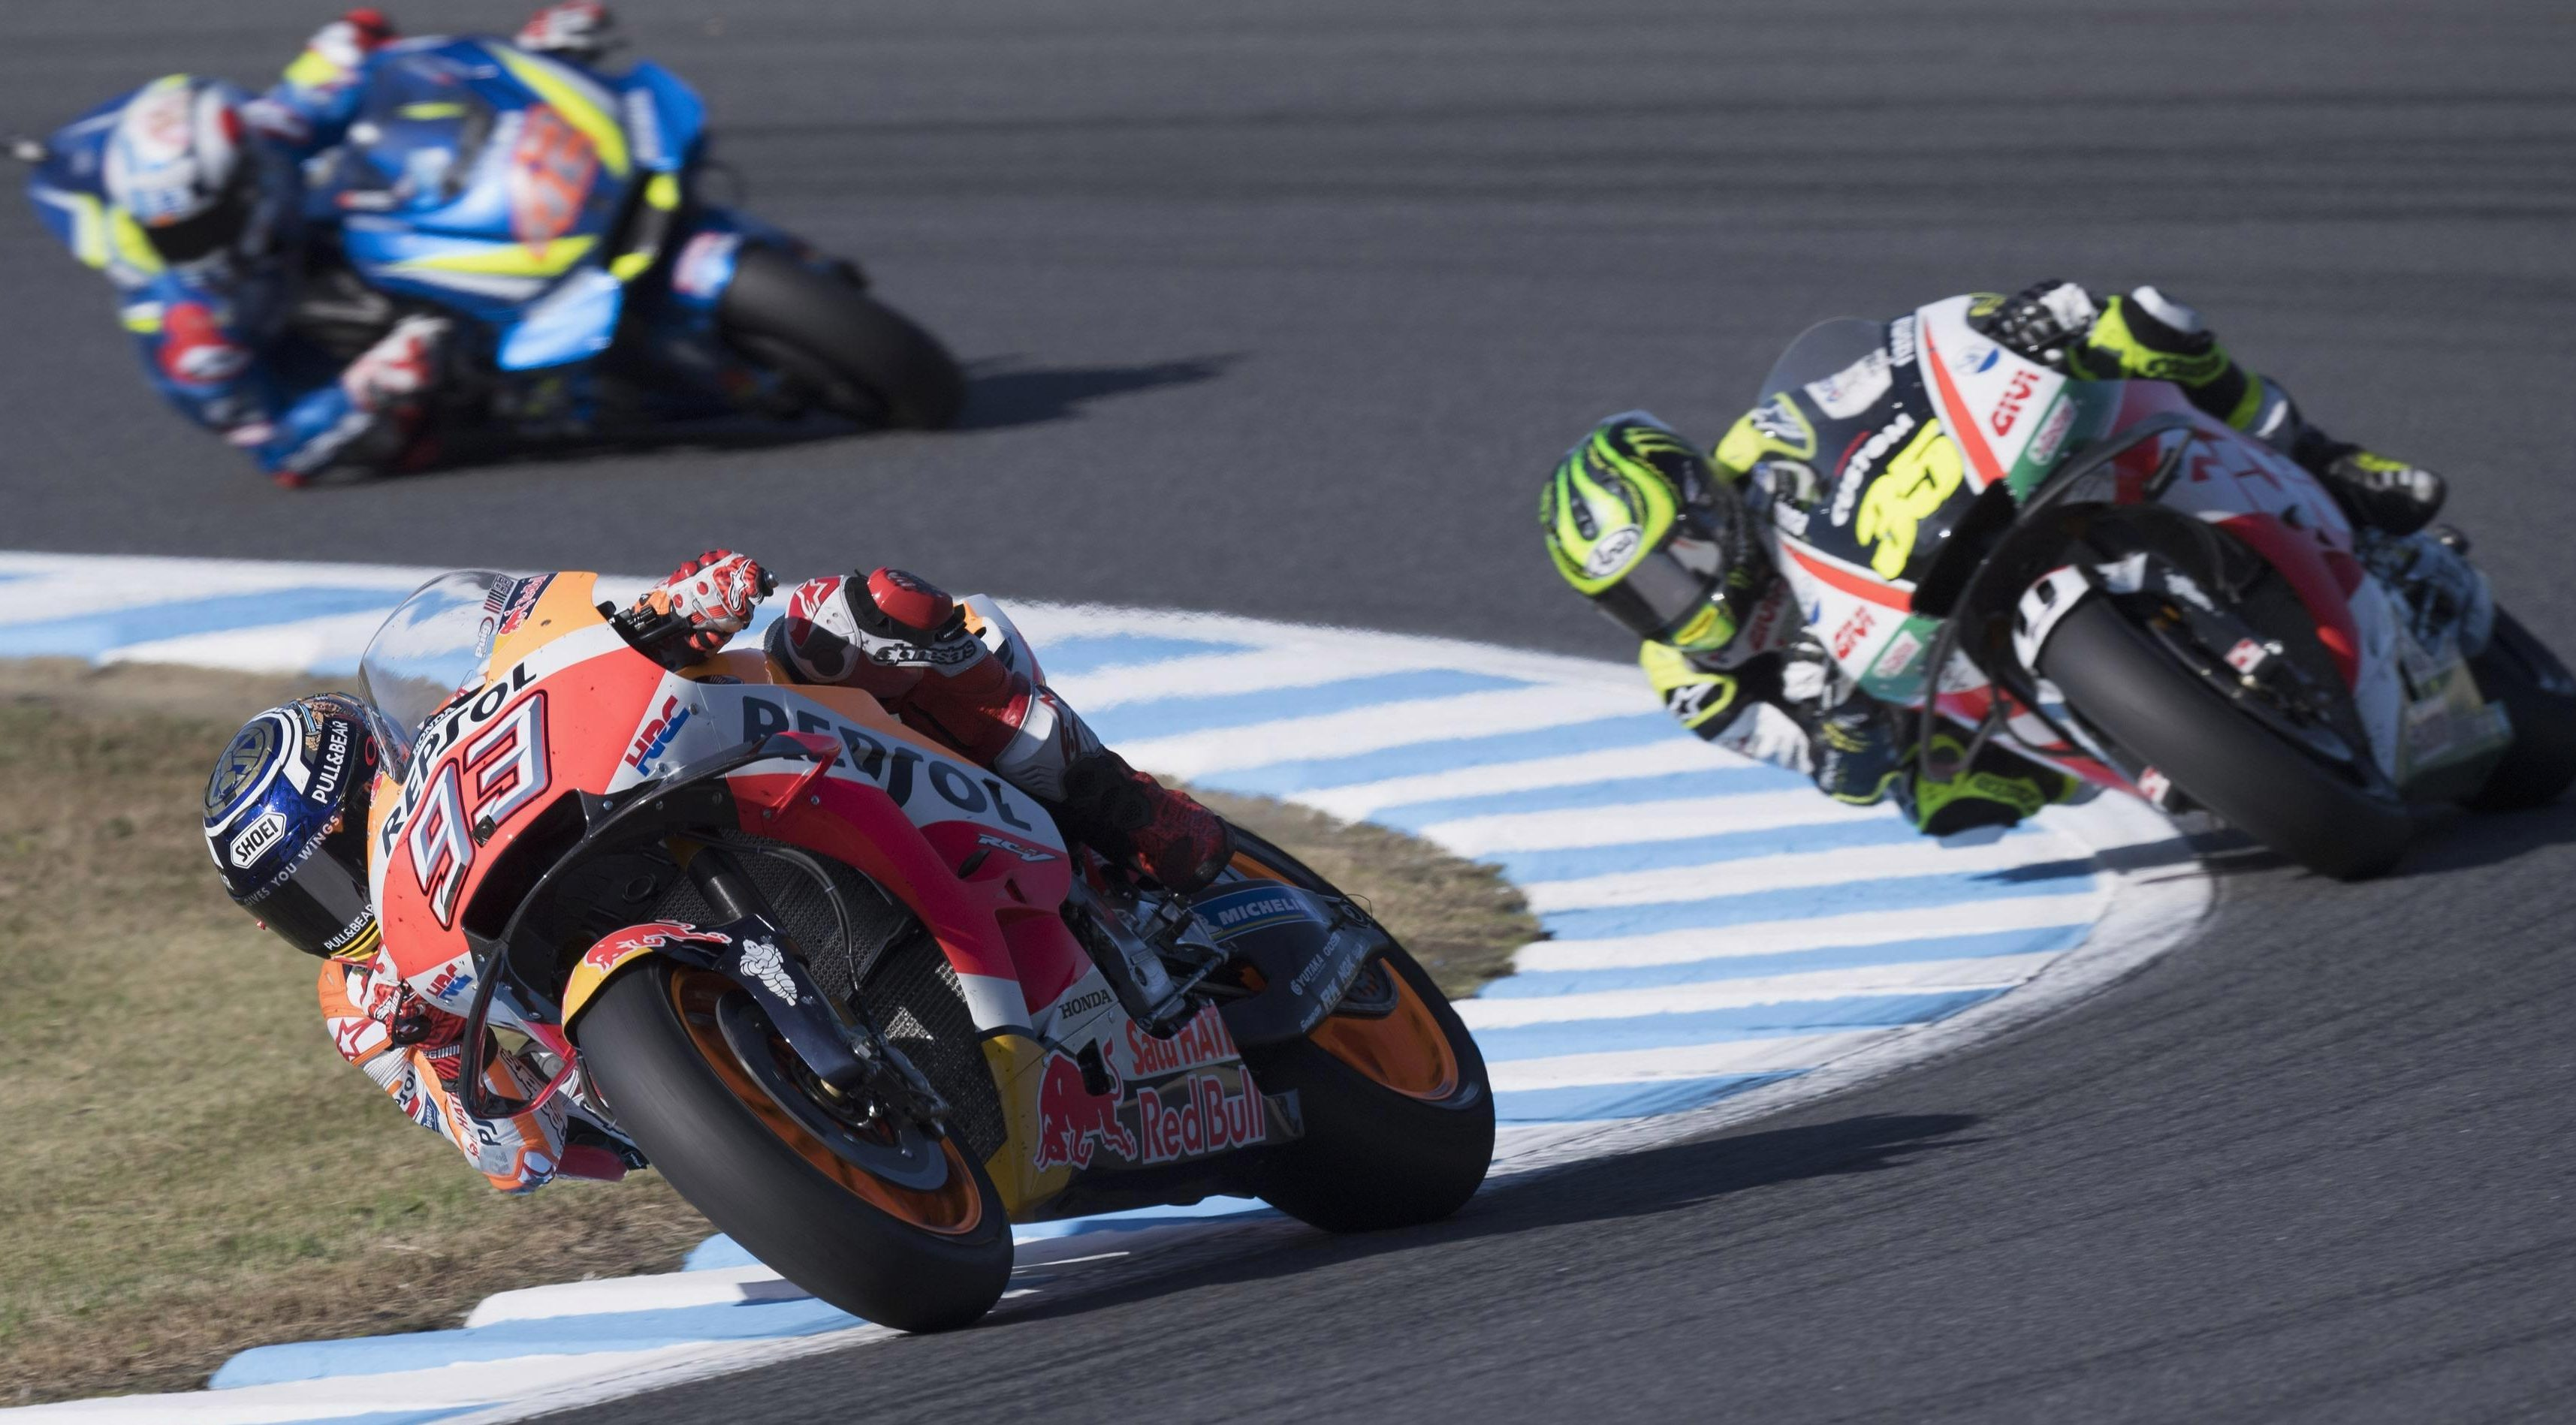 Marquez wrapped up his eight win of the season last weekend